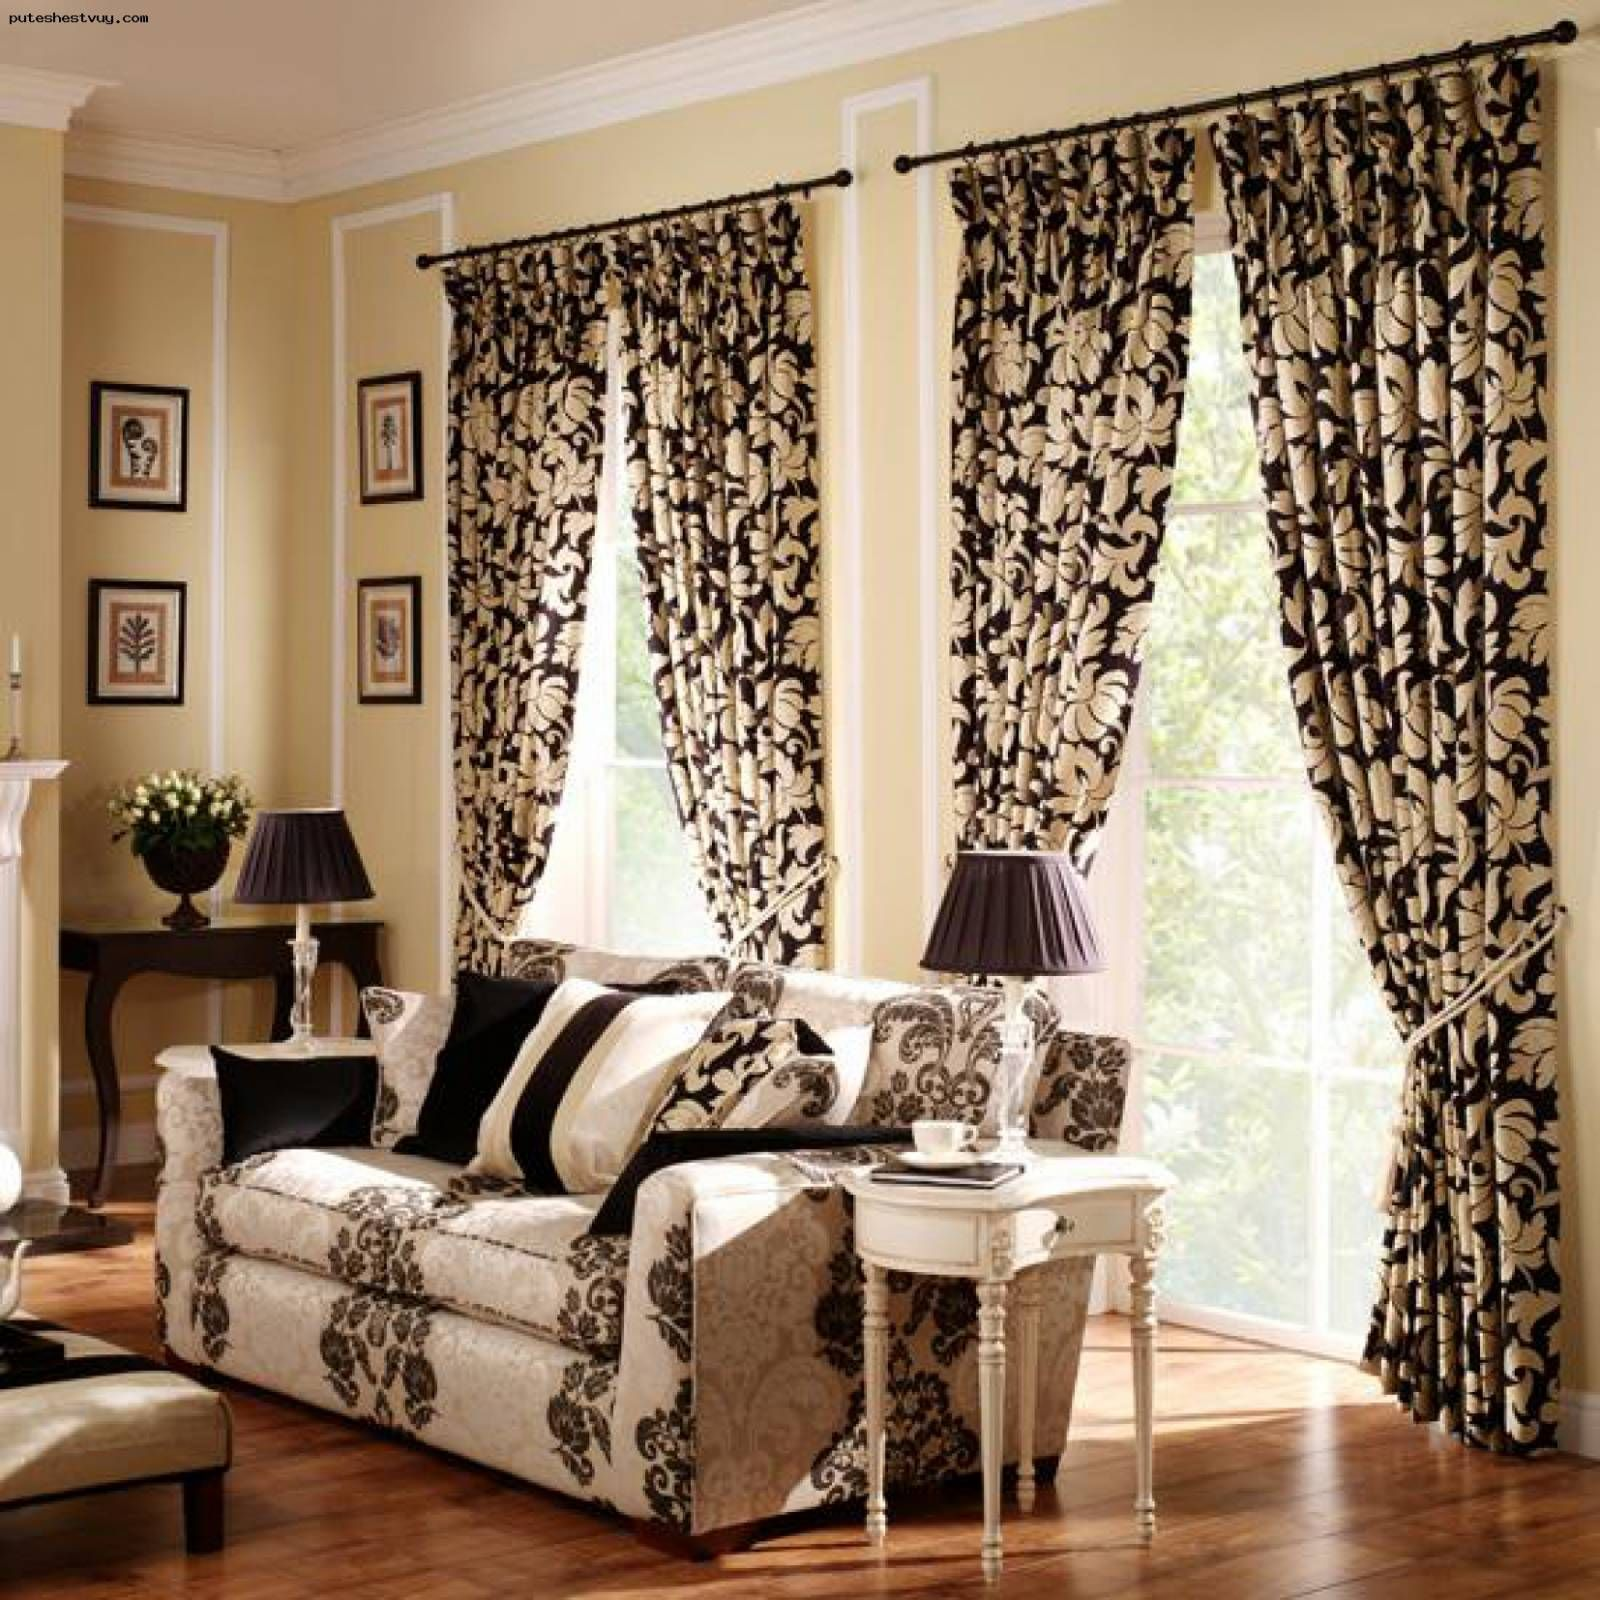 Gold And Black Flowery Pattern Curtains On Cozy Modern Curtain Ideas For Living Room Misafa Curtains Living Room Modern Curtains Living Room Blinds Design #patterned #curtains #for #living #room